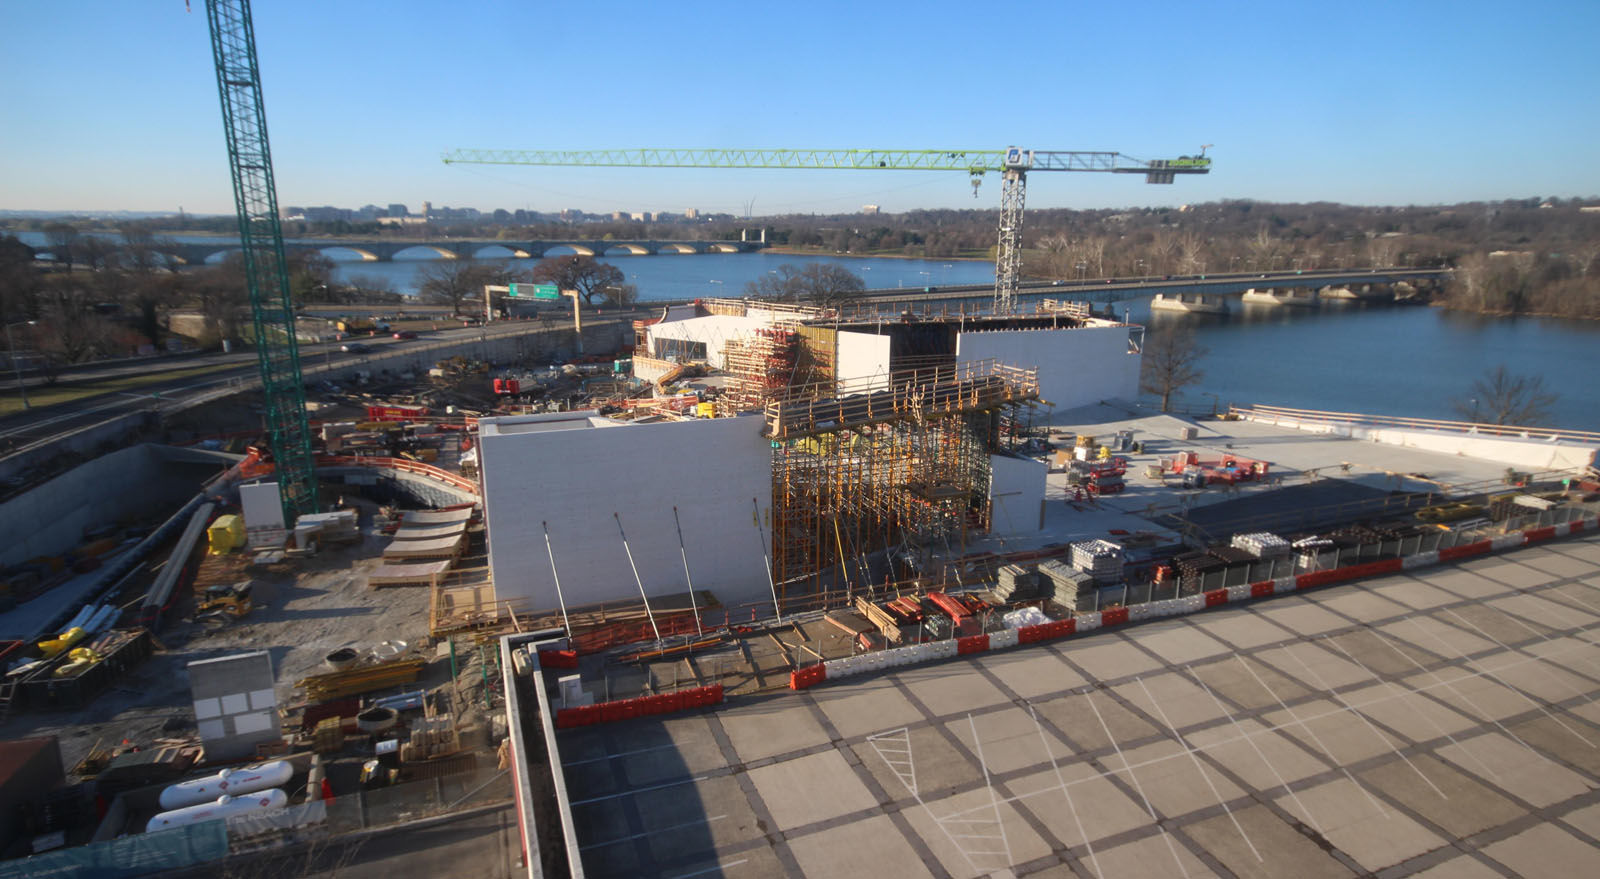 A look at the progress made on the construction of the Kennedy Center's expansion project on March 17, 2018. (Courtesy the Kennedy Center)